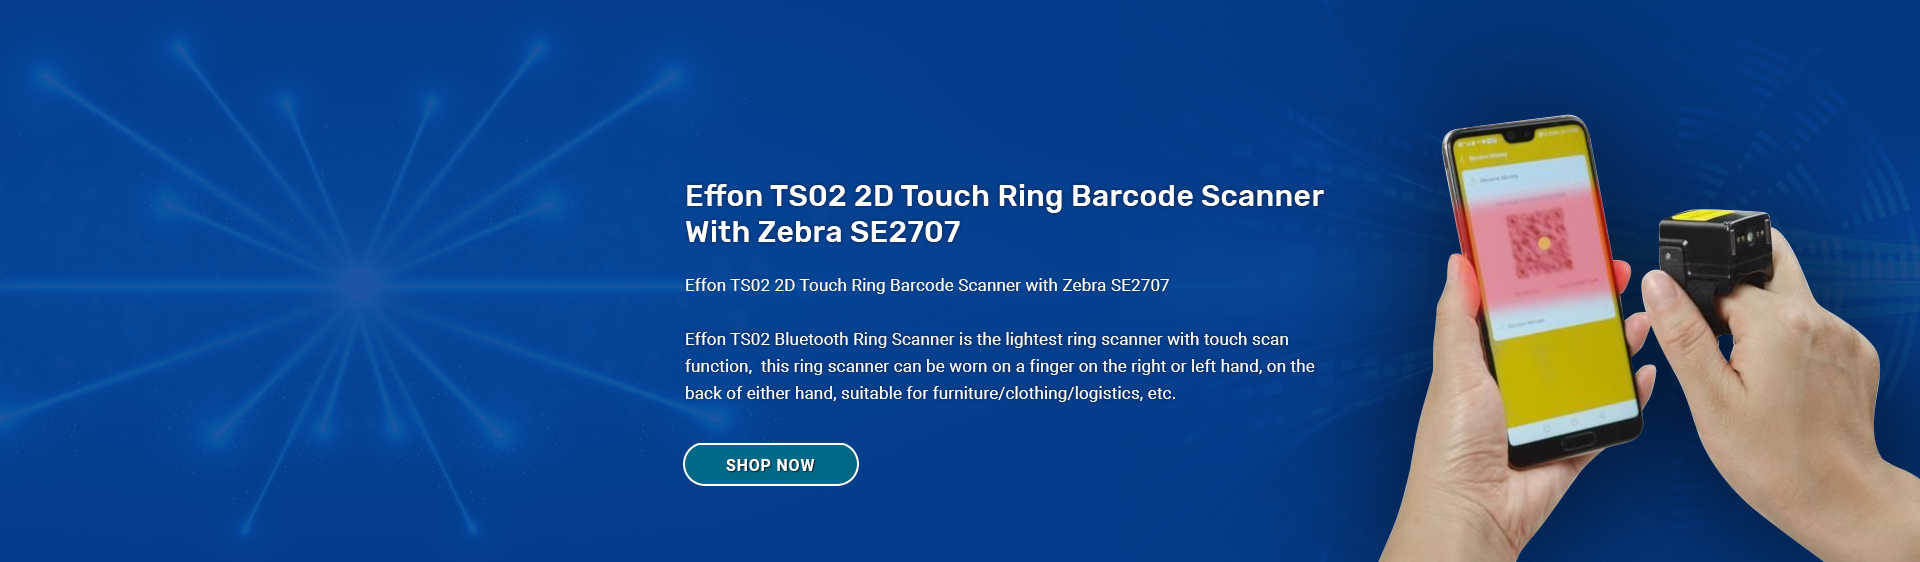 Effon TS02 2D Touch Ring ...